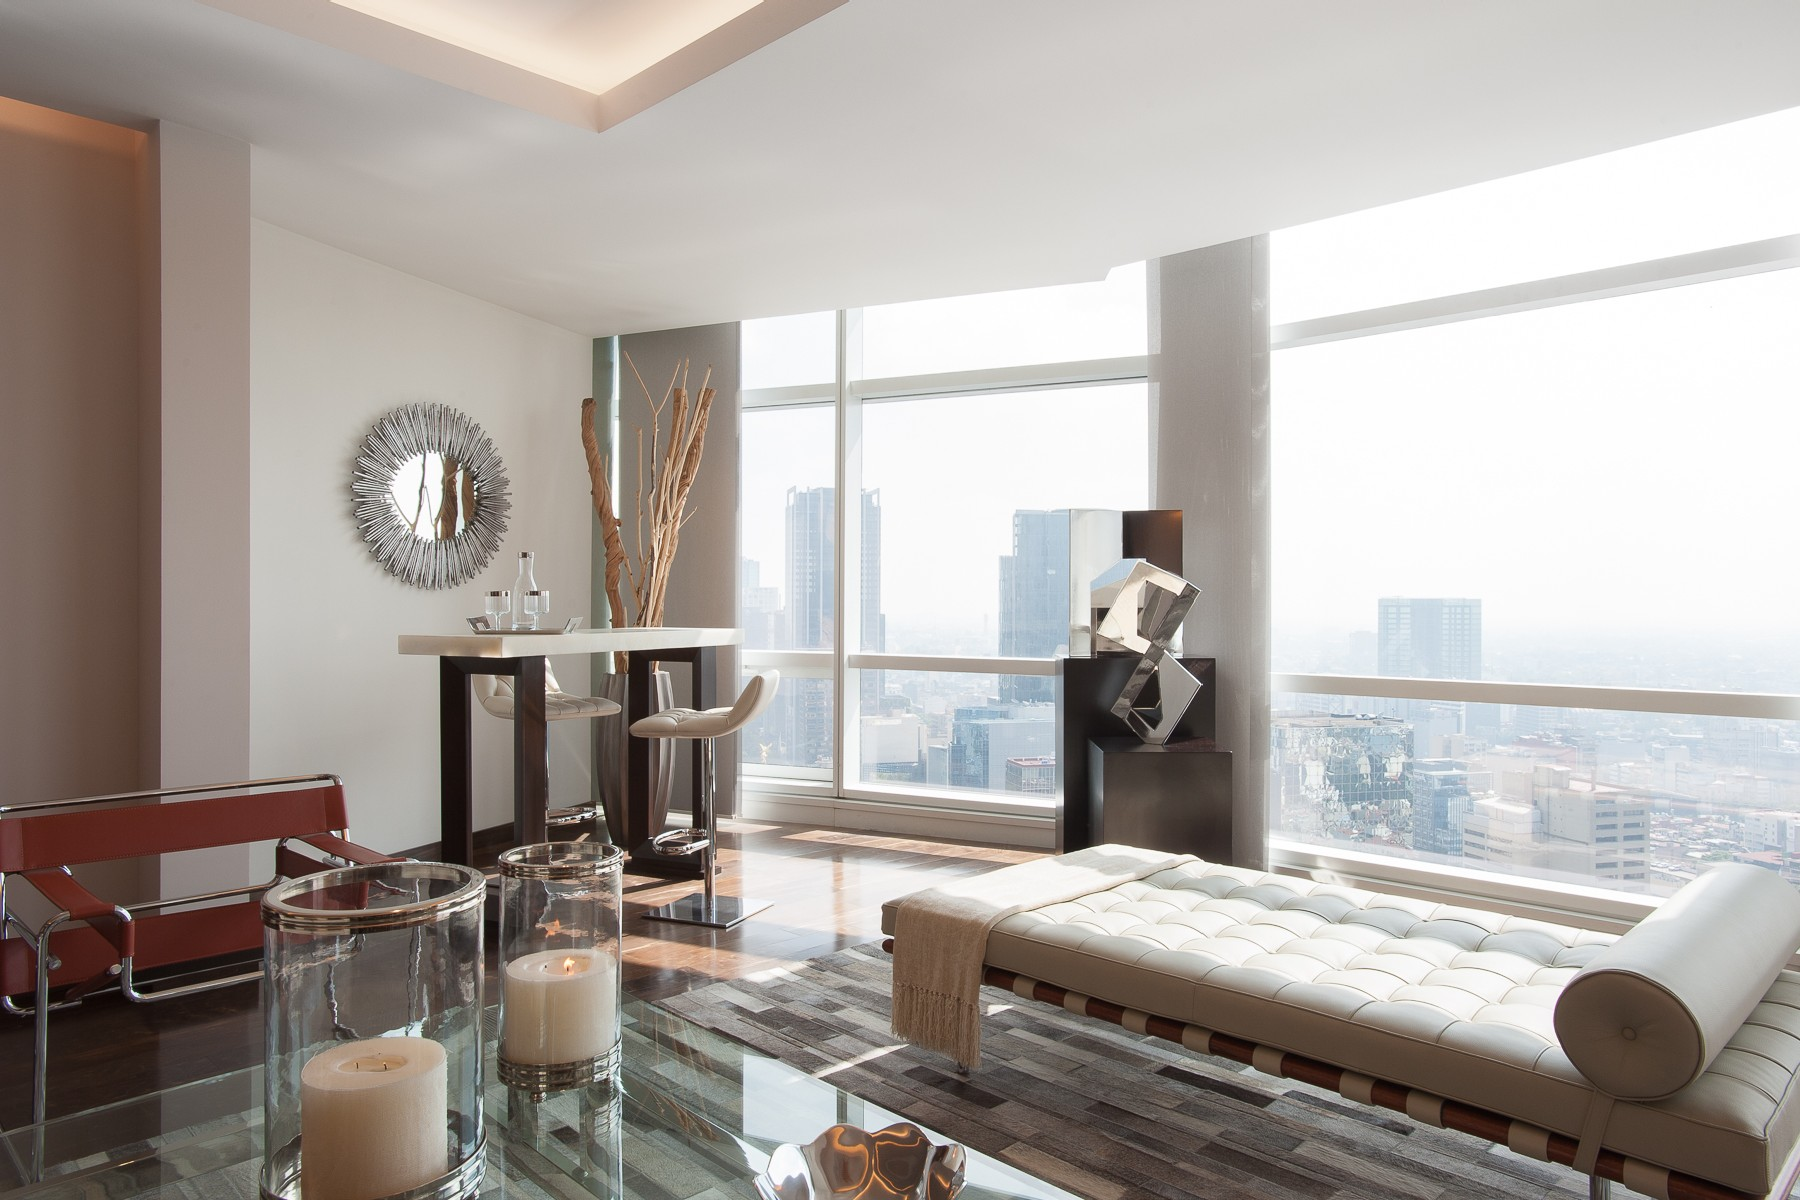 Additional photo for property listing at Pent House St. Regis Residence , Mexico City Av. Paseo de la Reforma 439 St. Regis Residences Federal District, Mexico Df 06500 México